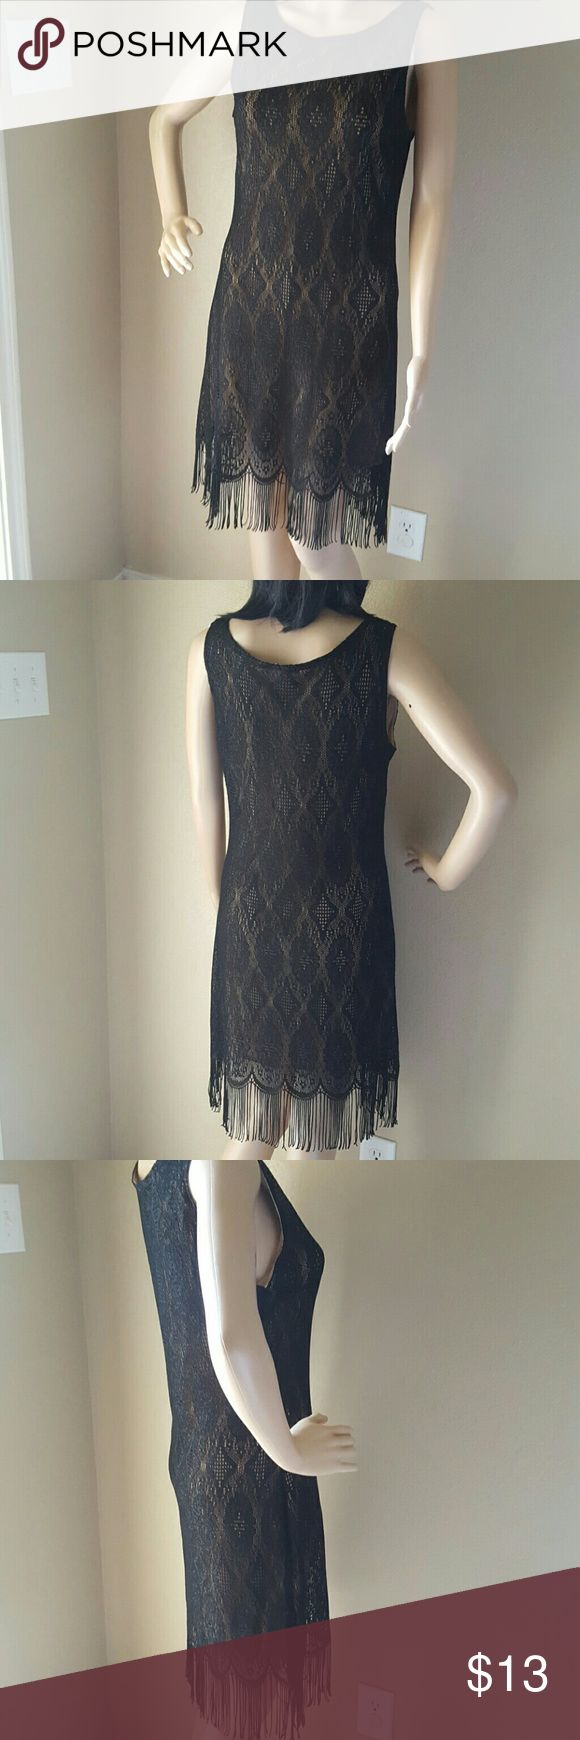 Black Flapper Dress Black lace with fringe hem. Nude sheer lining underneath. Does not have a size tag in it, but I would say it's a size small. Hem on lining coming unraveled. Simple handstitch would fix. Perfect for Roaring 20's theme party or Flapper Girl costume. Opera Dresses Mini